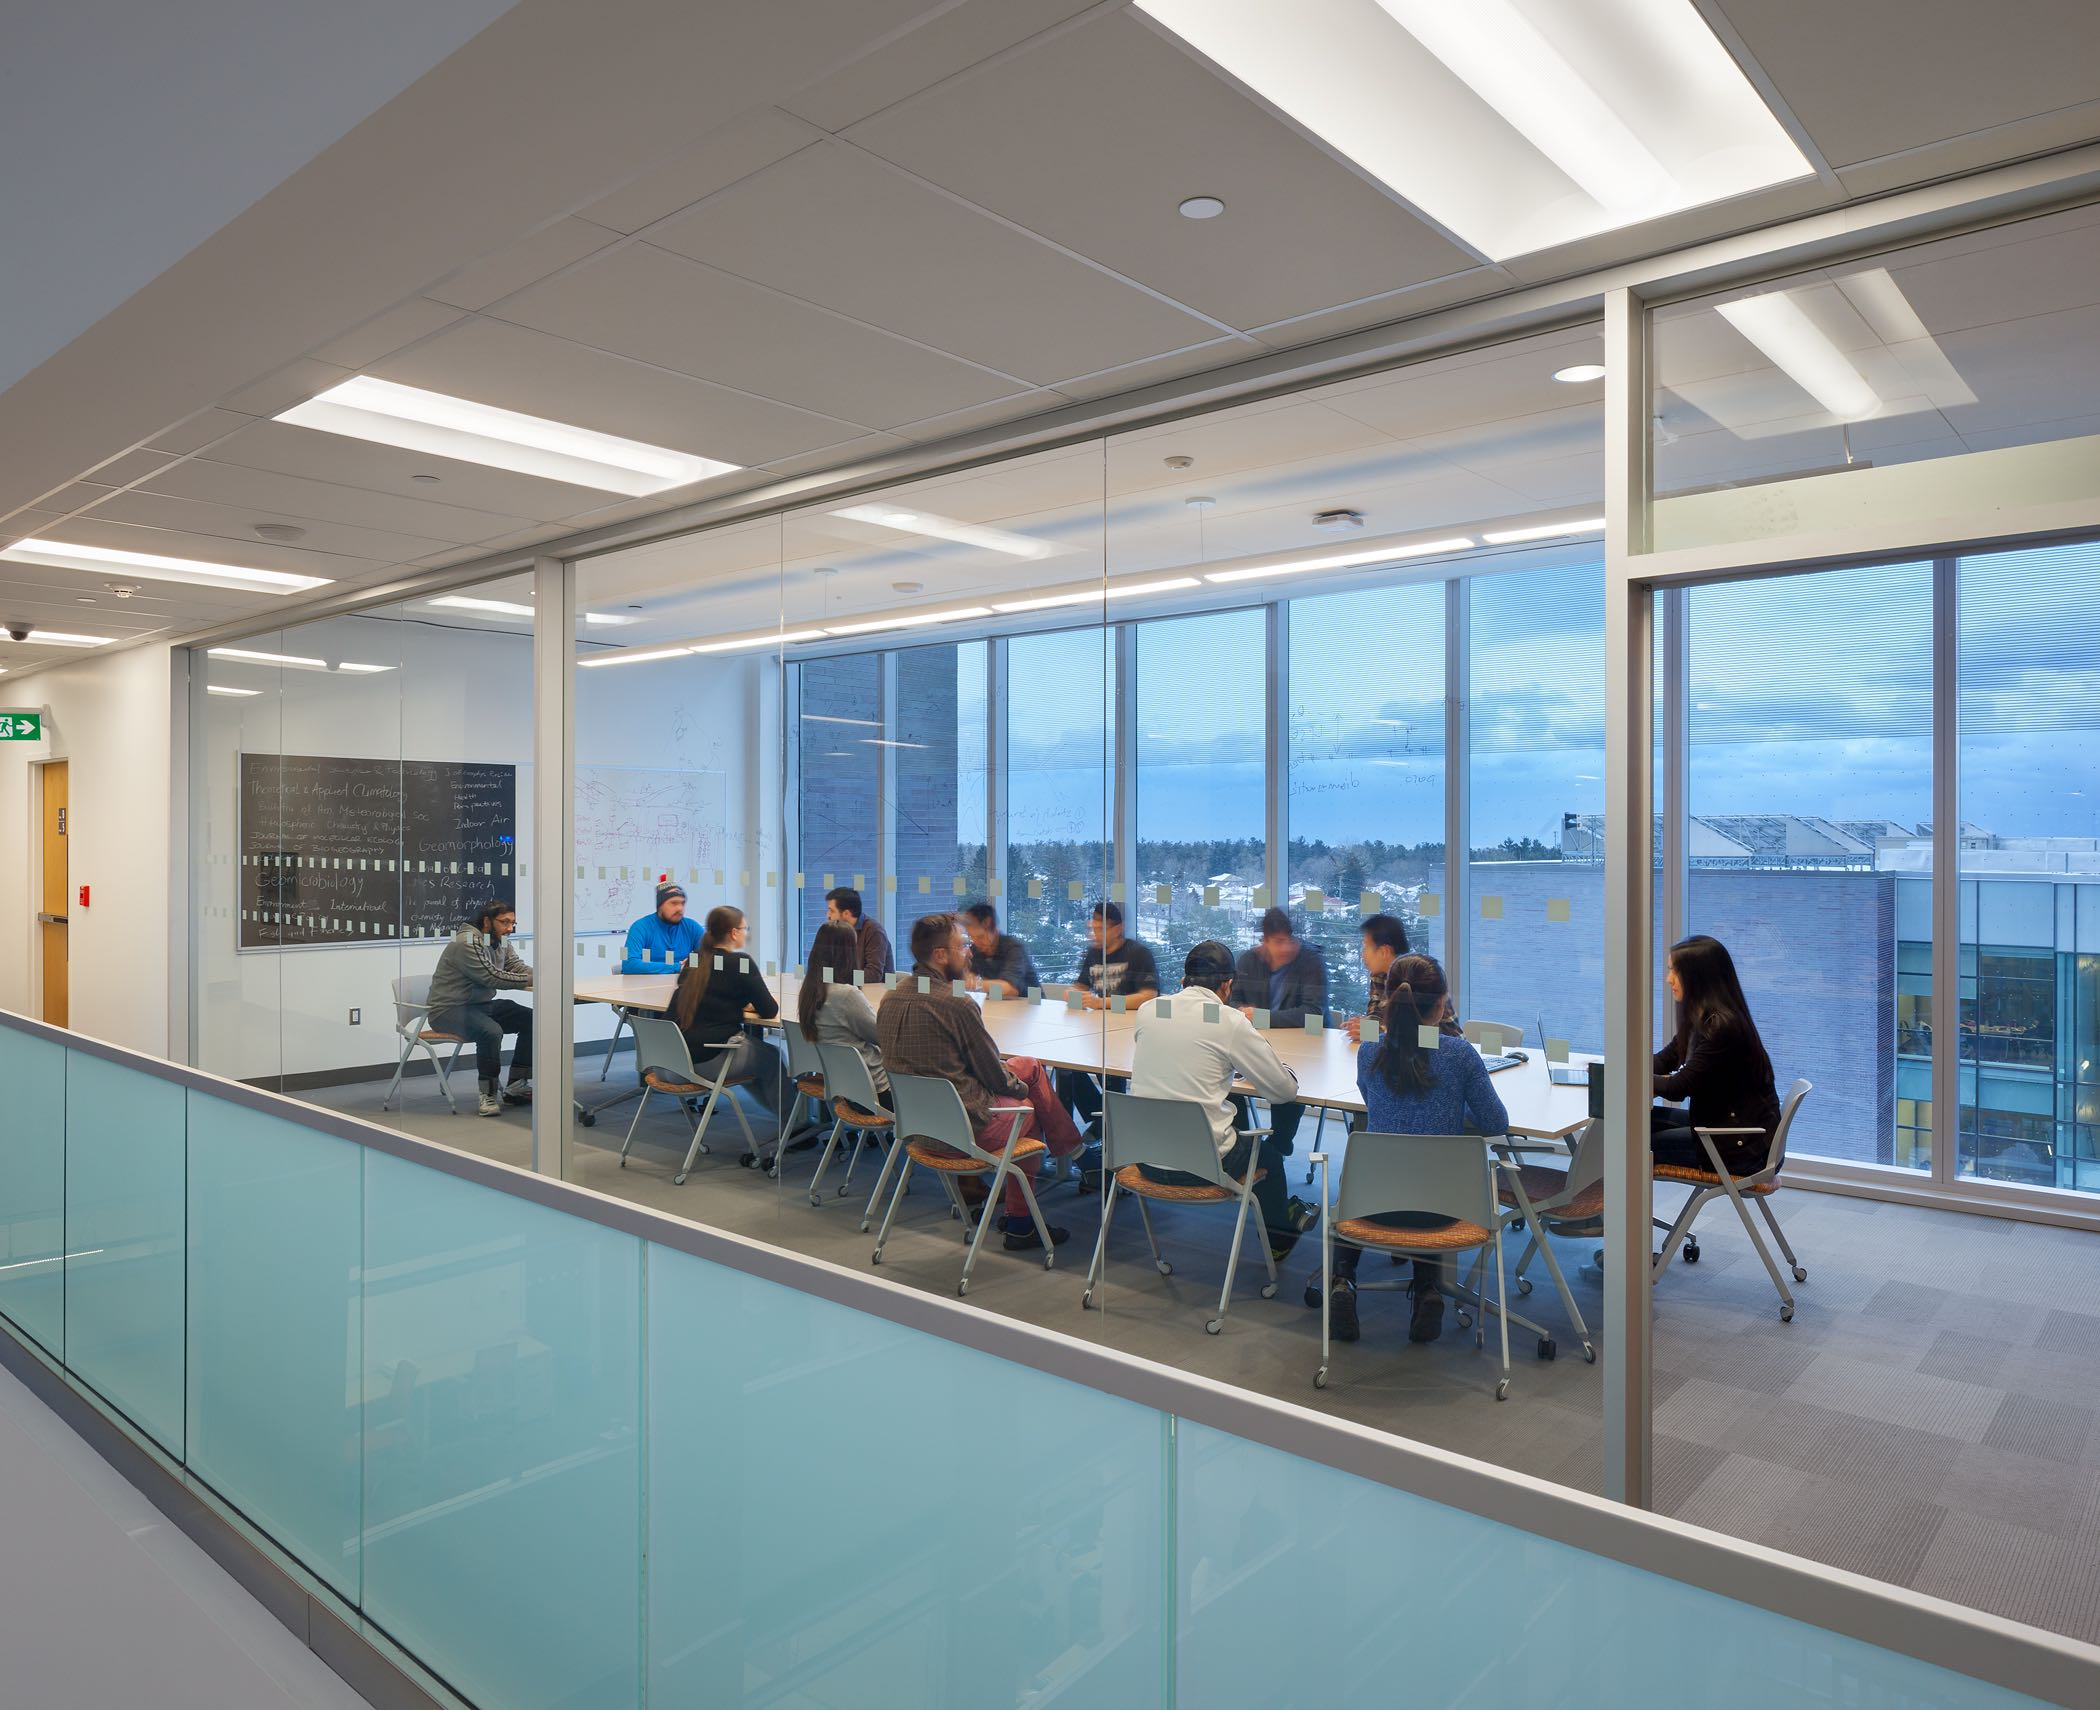 Collaborative spaces at the ends of the floorplates enjoy writable glass walls and views of the city in the distance. Photo by Tom Arban.